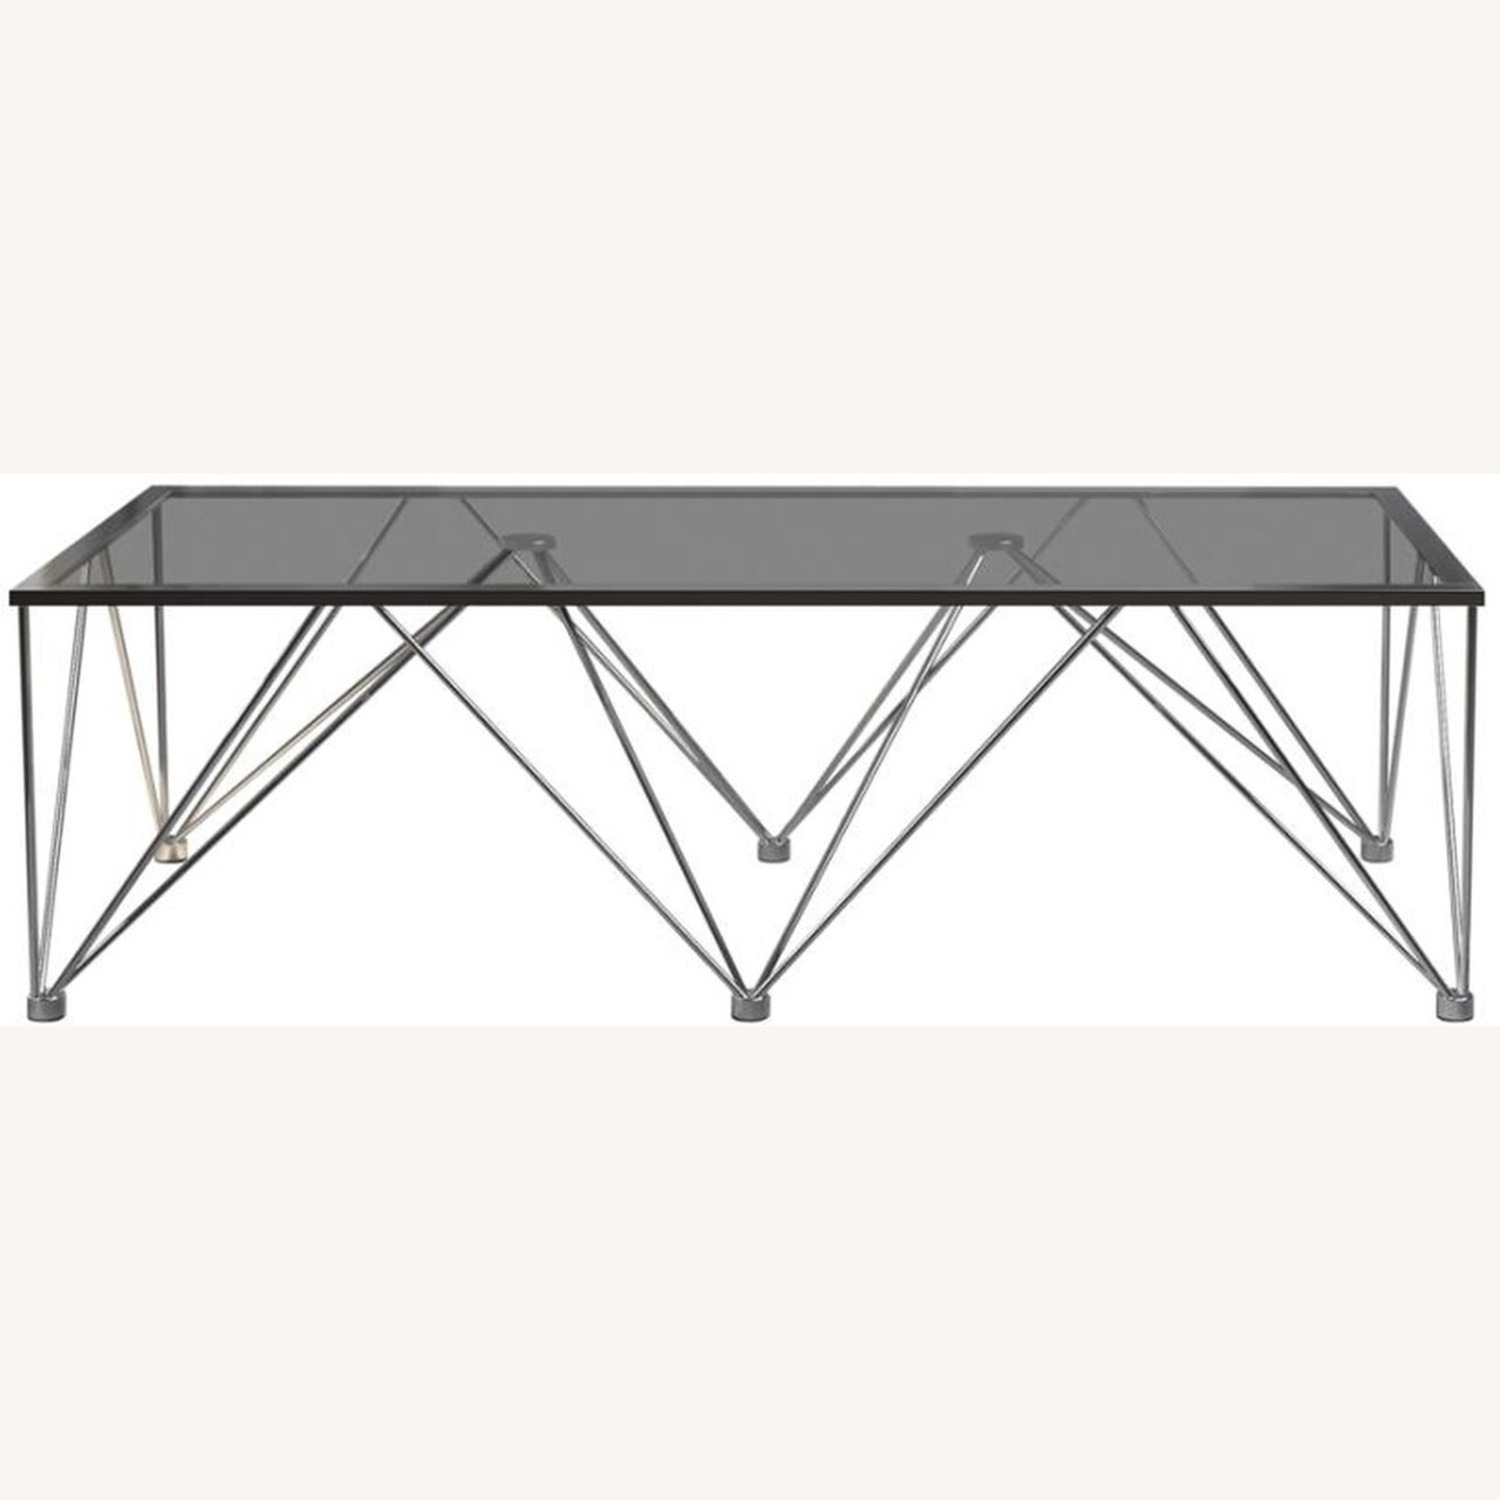 Modern Coffee Table In Chrome Metal Base - image-1